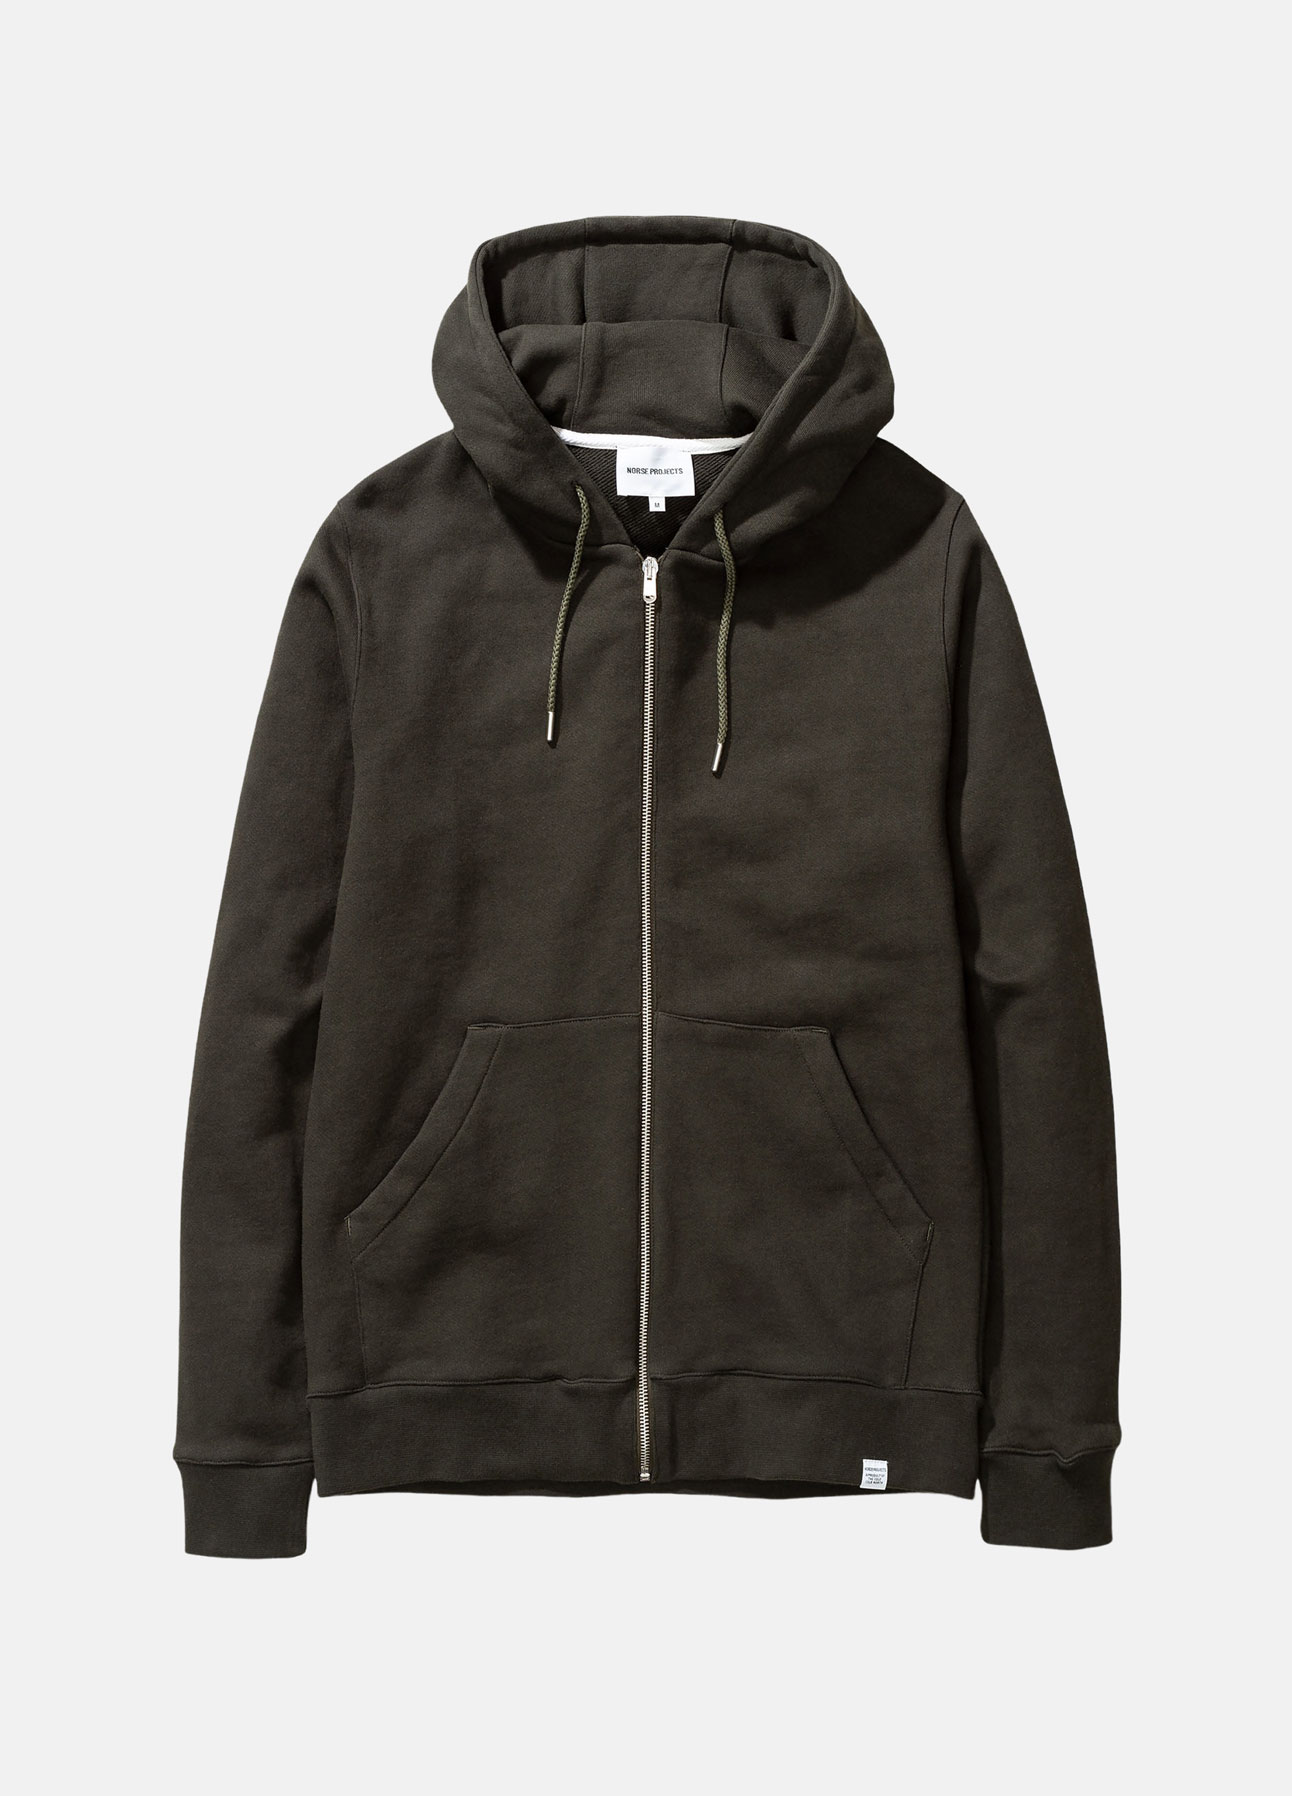 norse projects sweatshirt cagn zip i grøn